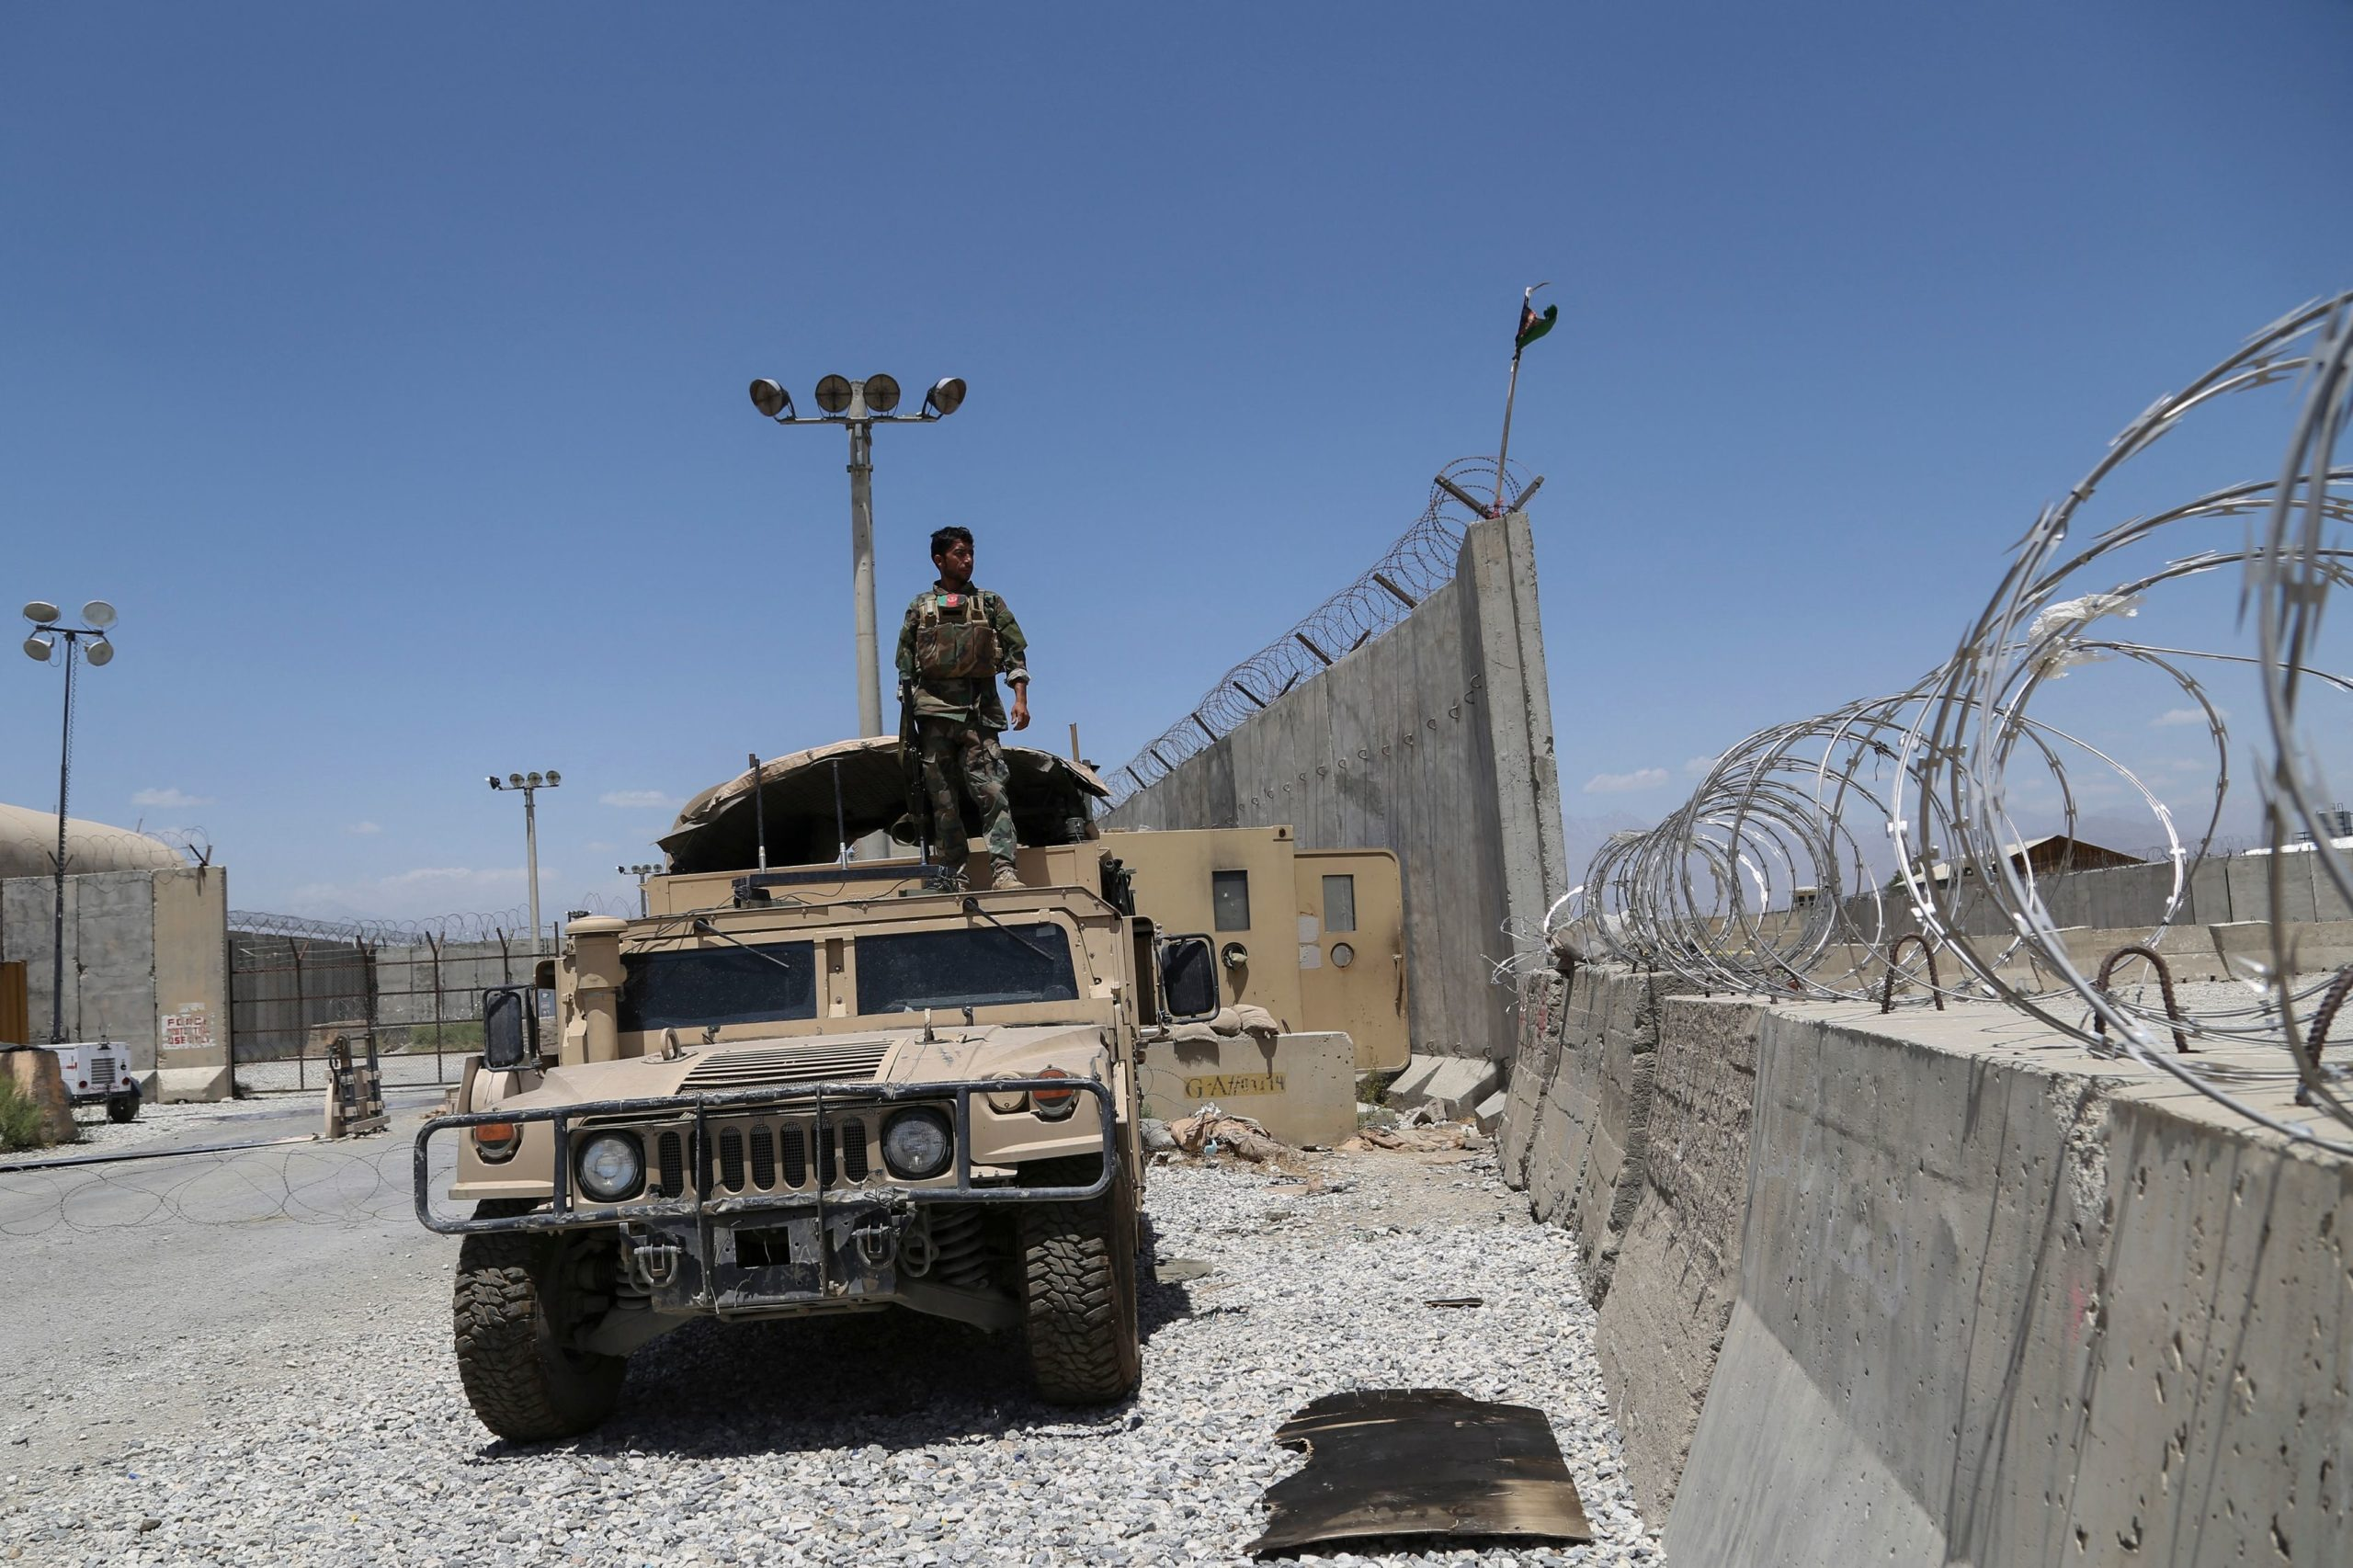 An Afghan National Army soldier looks out while standing on a Humvee vehicle at Bagram Air Base after all U.S. troops left on July 2. (Zakeria Hashimi/AFP via Getty Images)